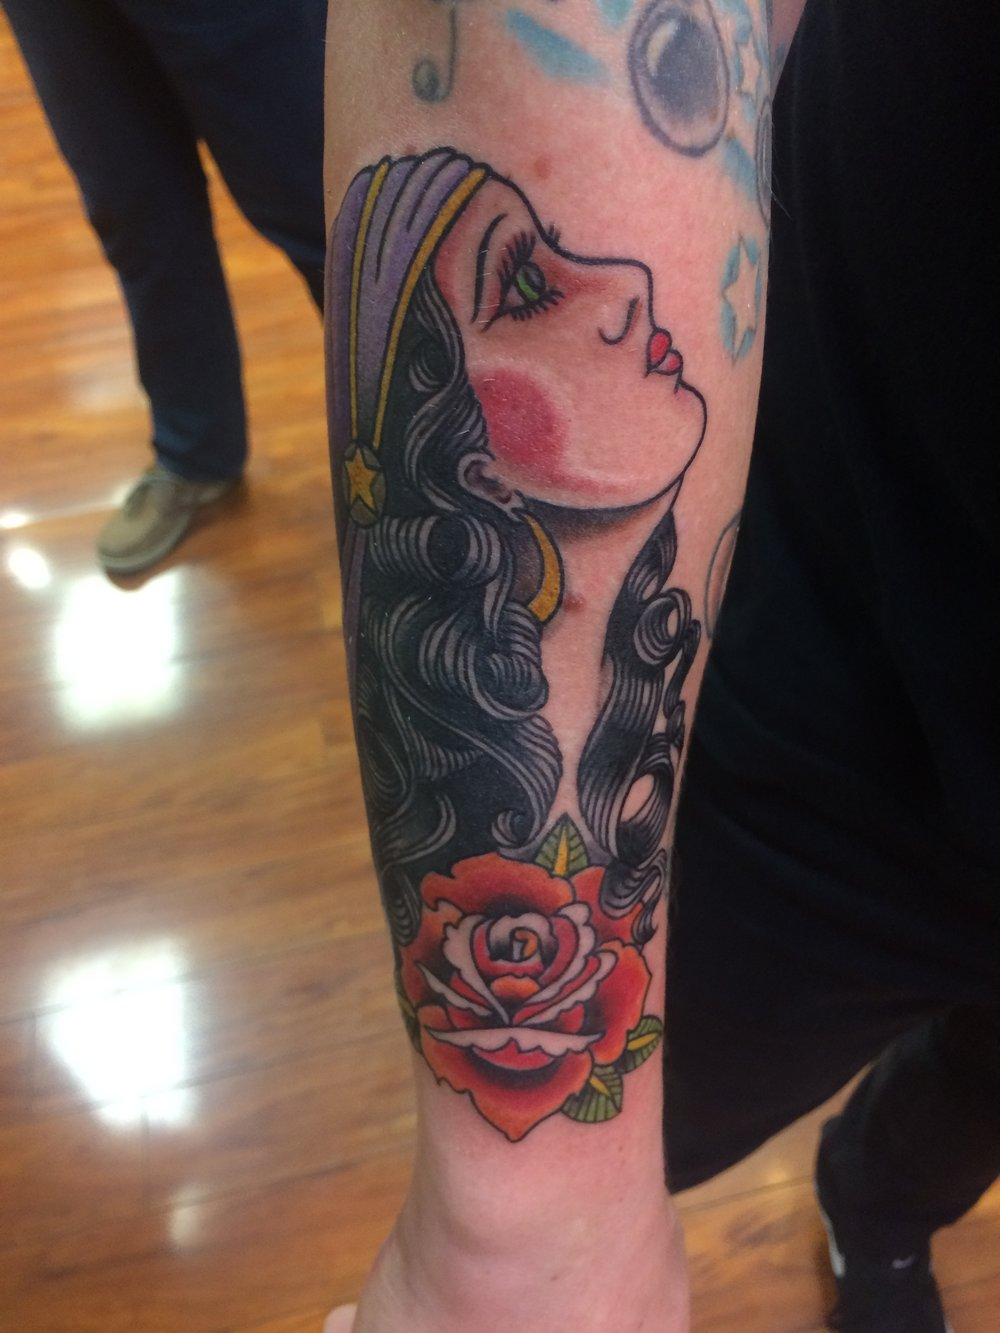 Tattoo by Tres Denk.